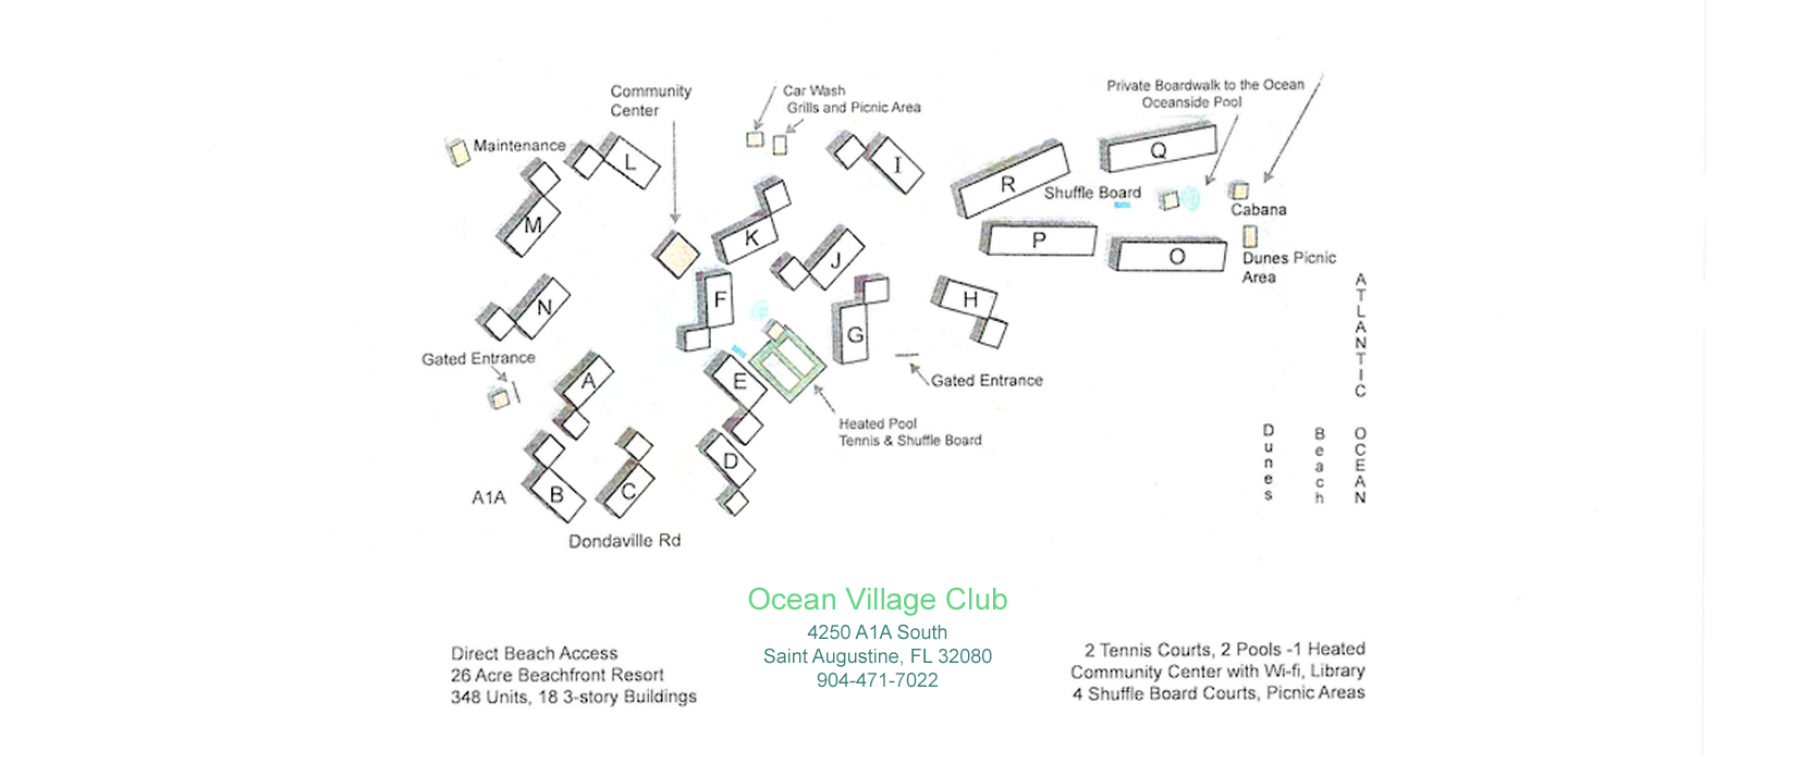 Ocean Village Club Map